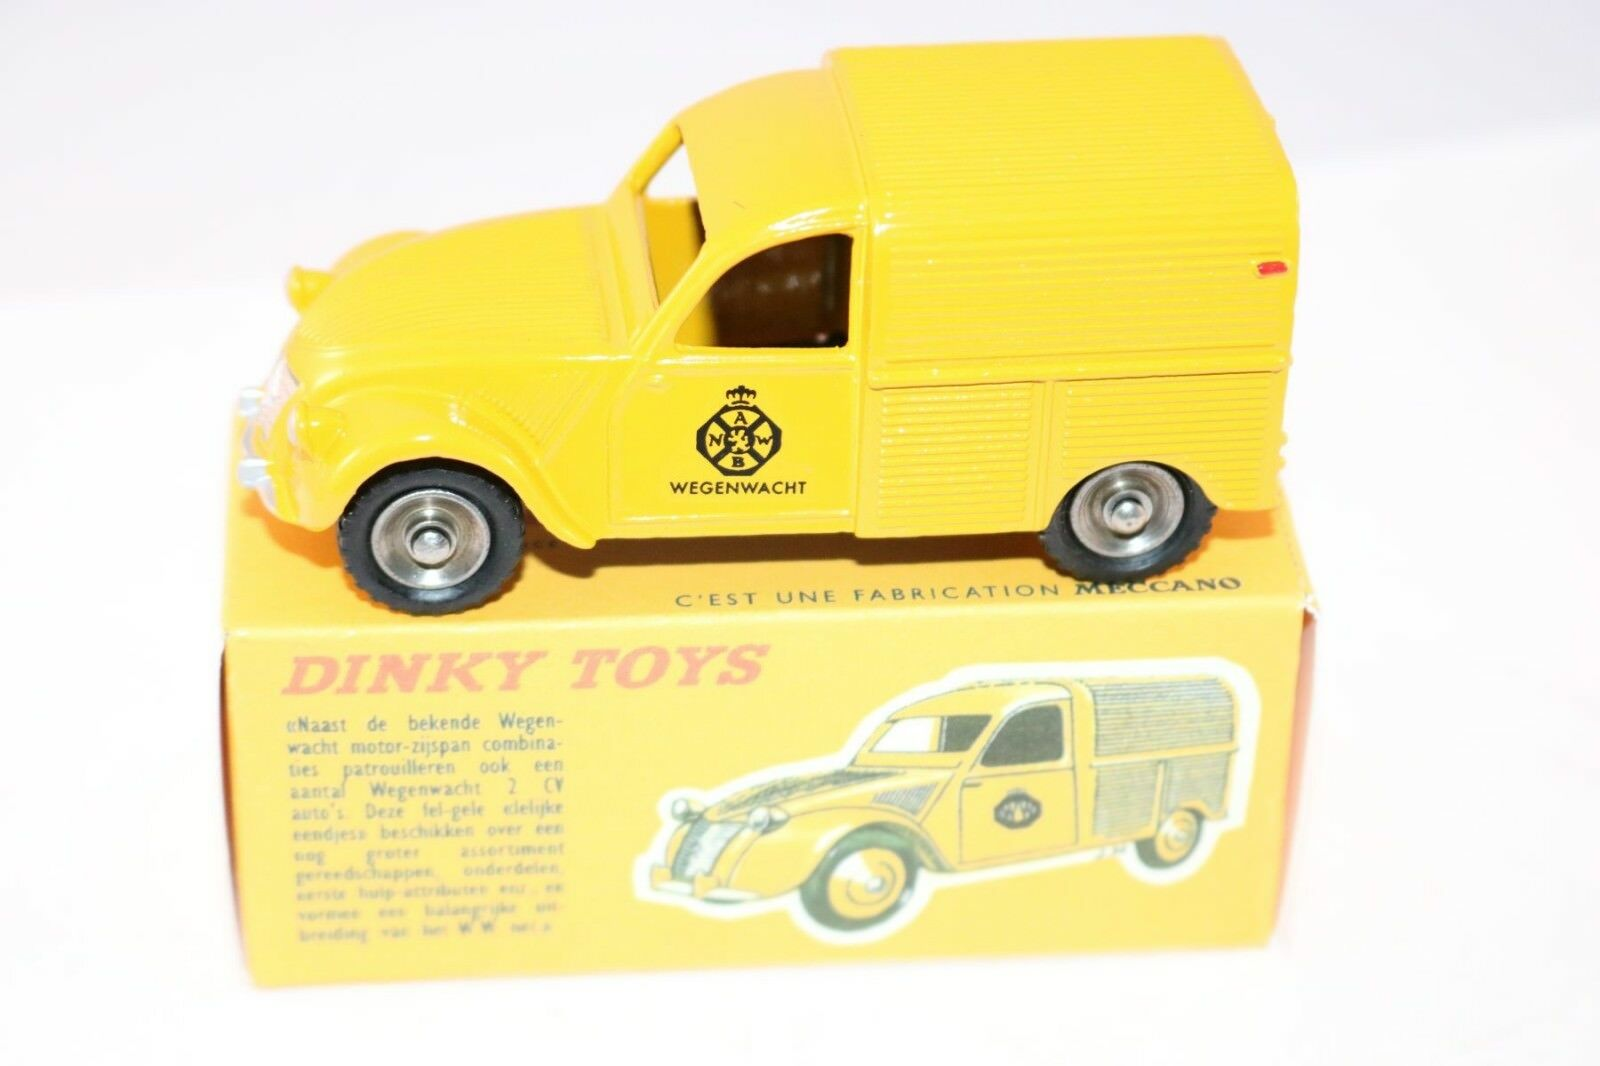 Dinky Toys 462H Citroën 2CV Wegenwacht ANWB in super repainted condition in box